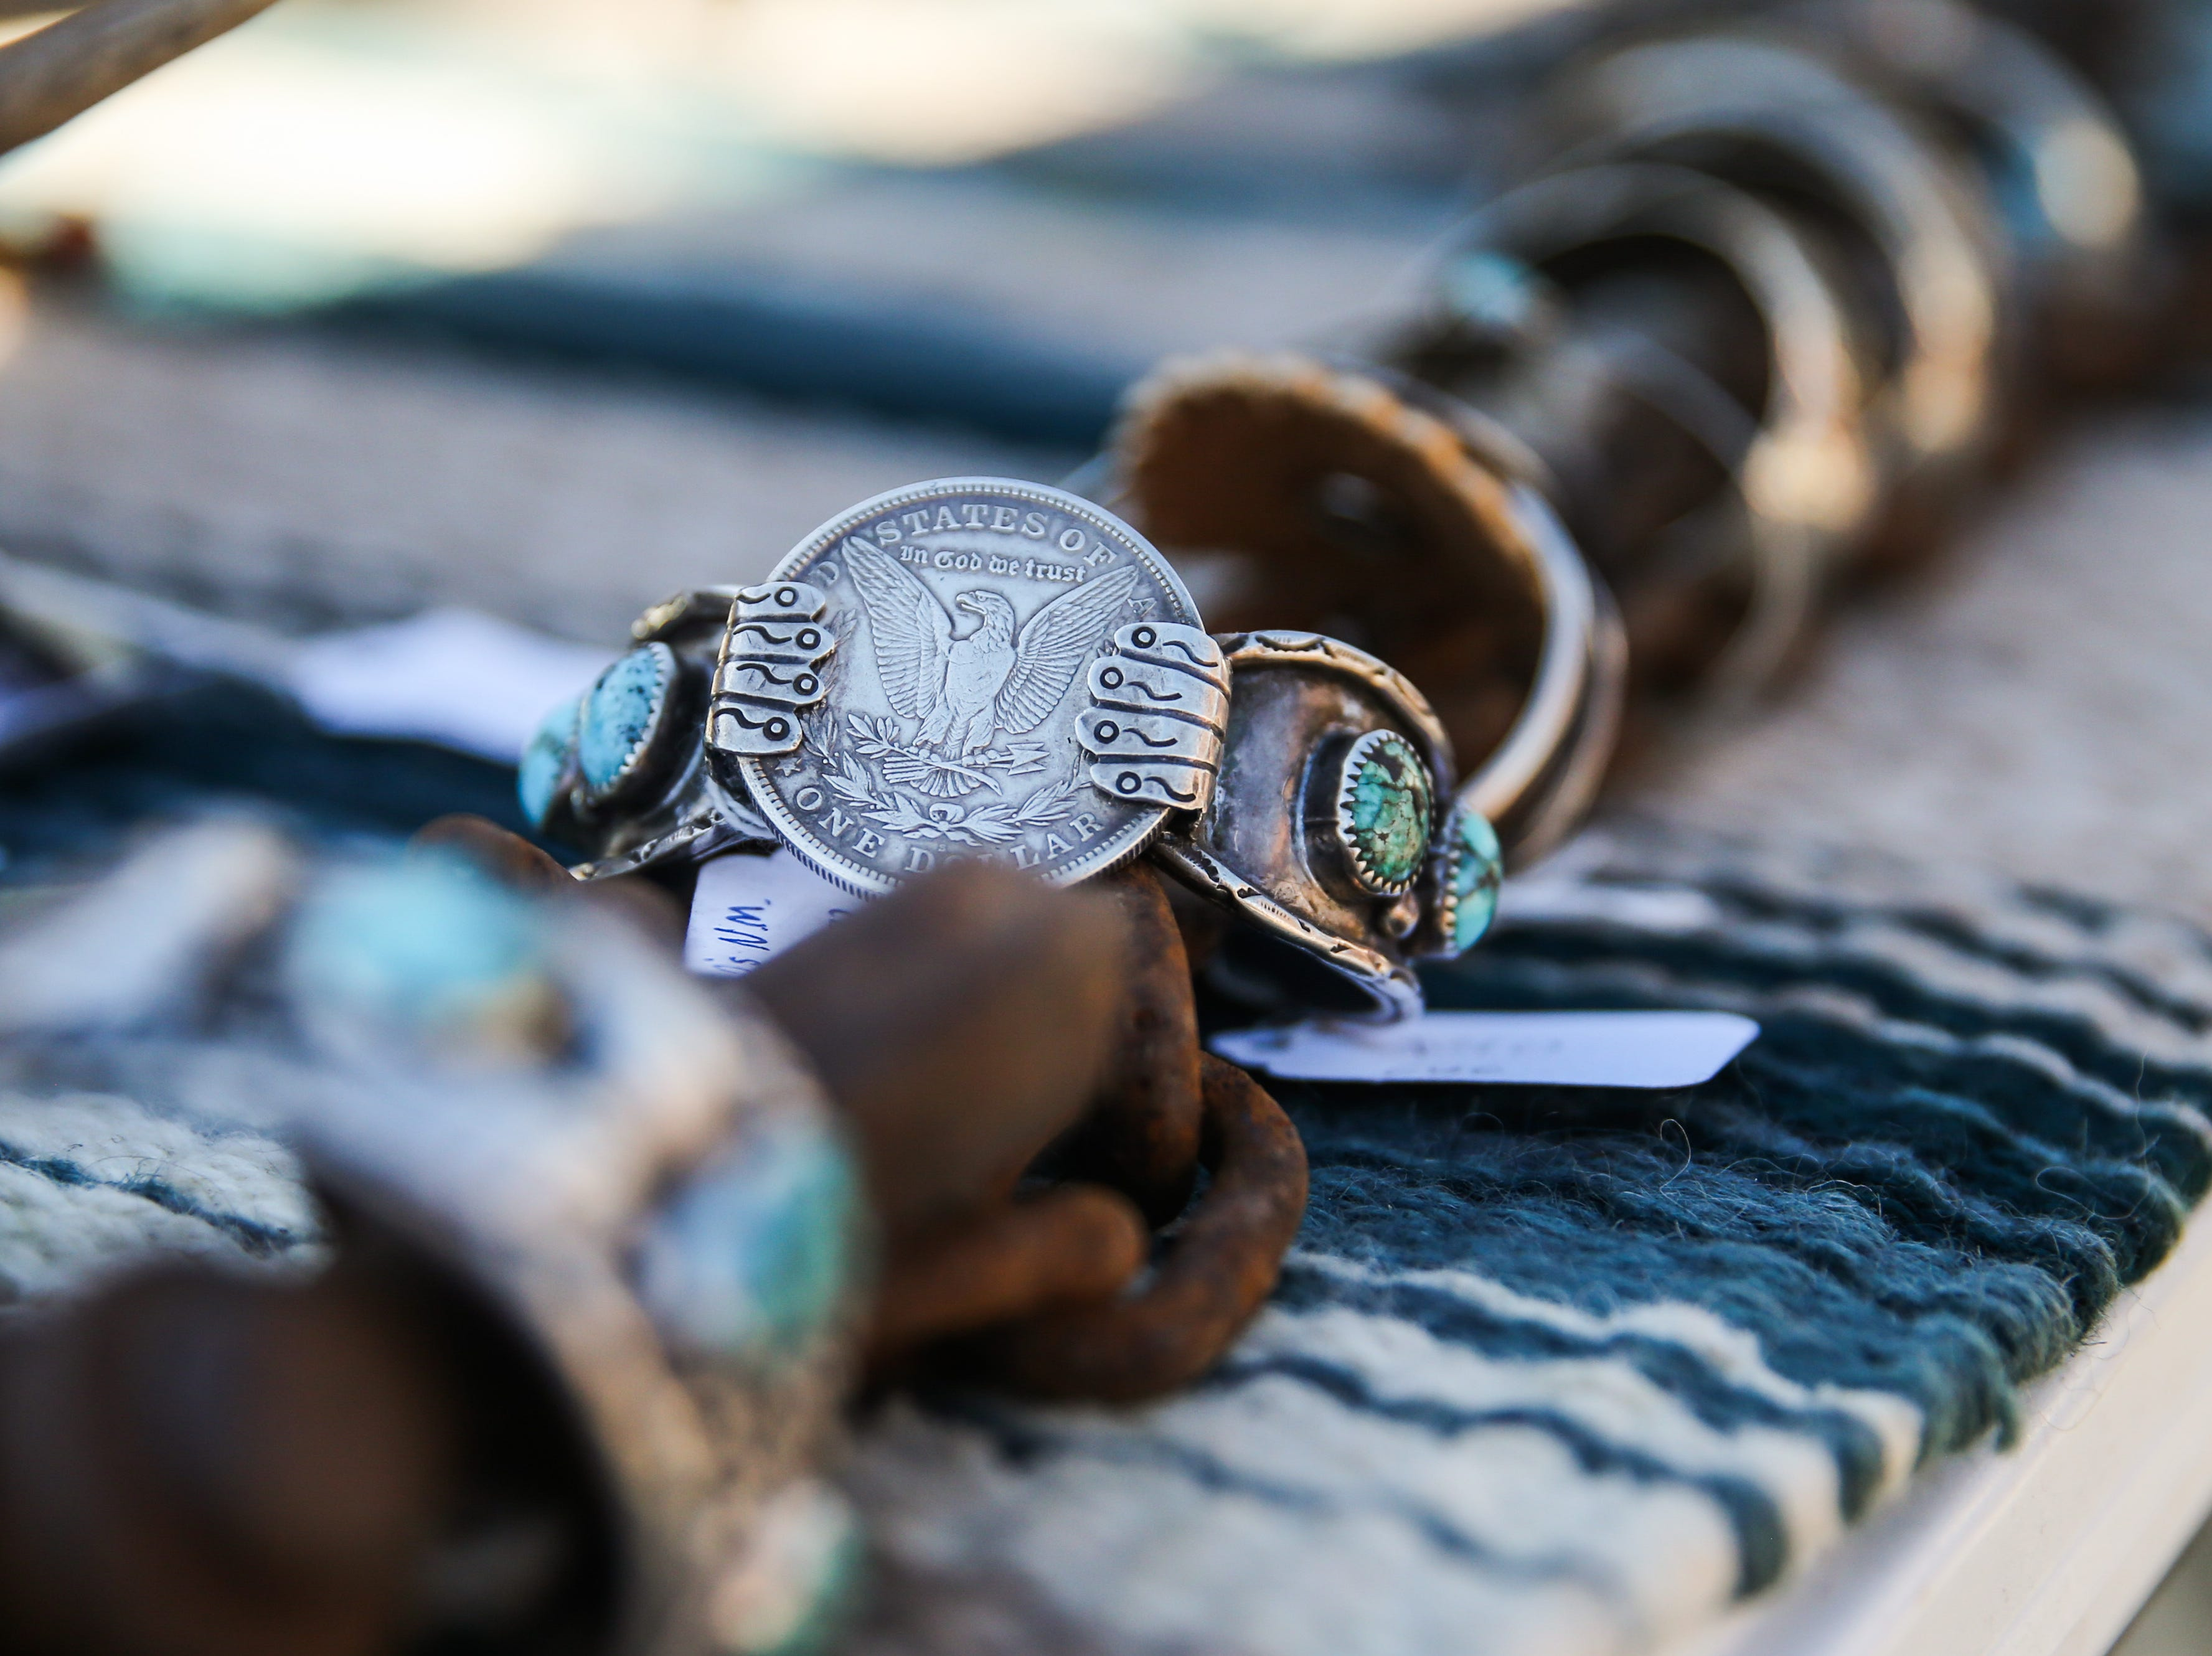 Bracelets by Clearwater Creek Equine and Collectables on display during the Thanksgiving Open House Friday, Nov. 23, 2018, at the Chicken Farm Art Center.